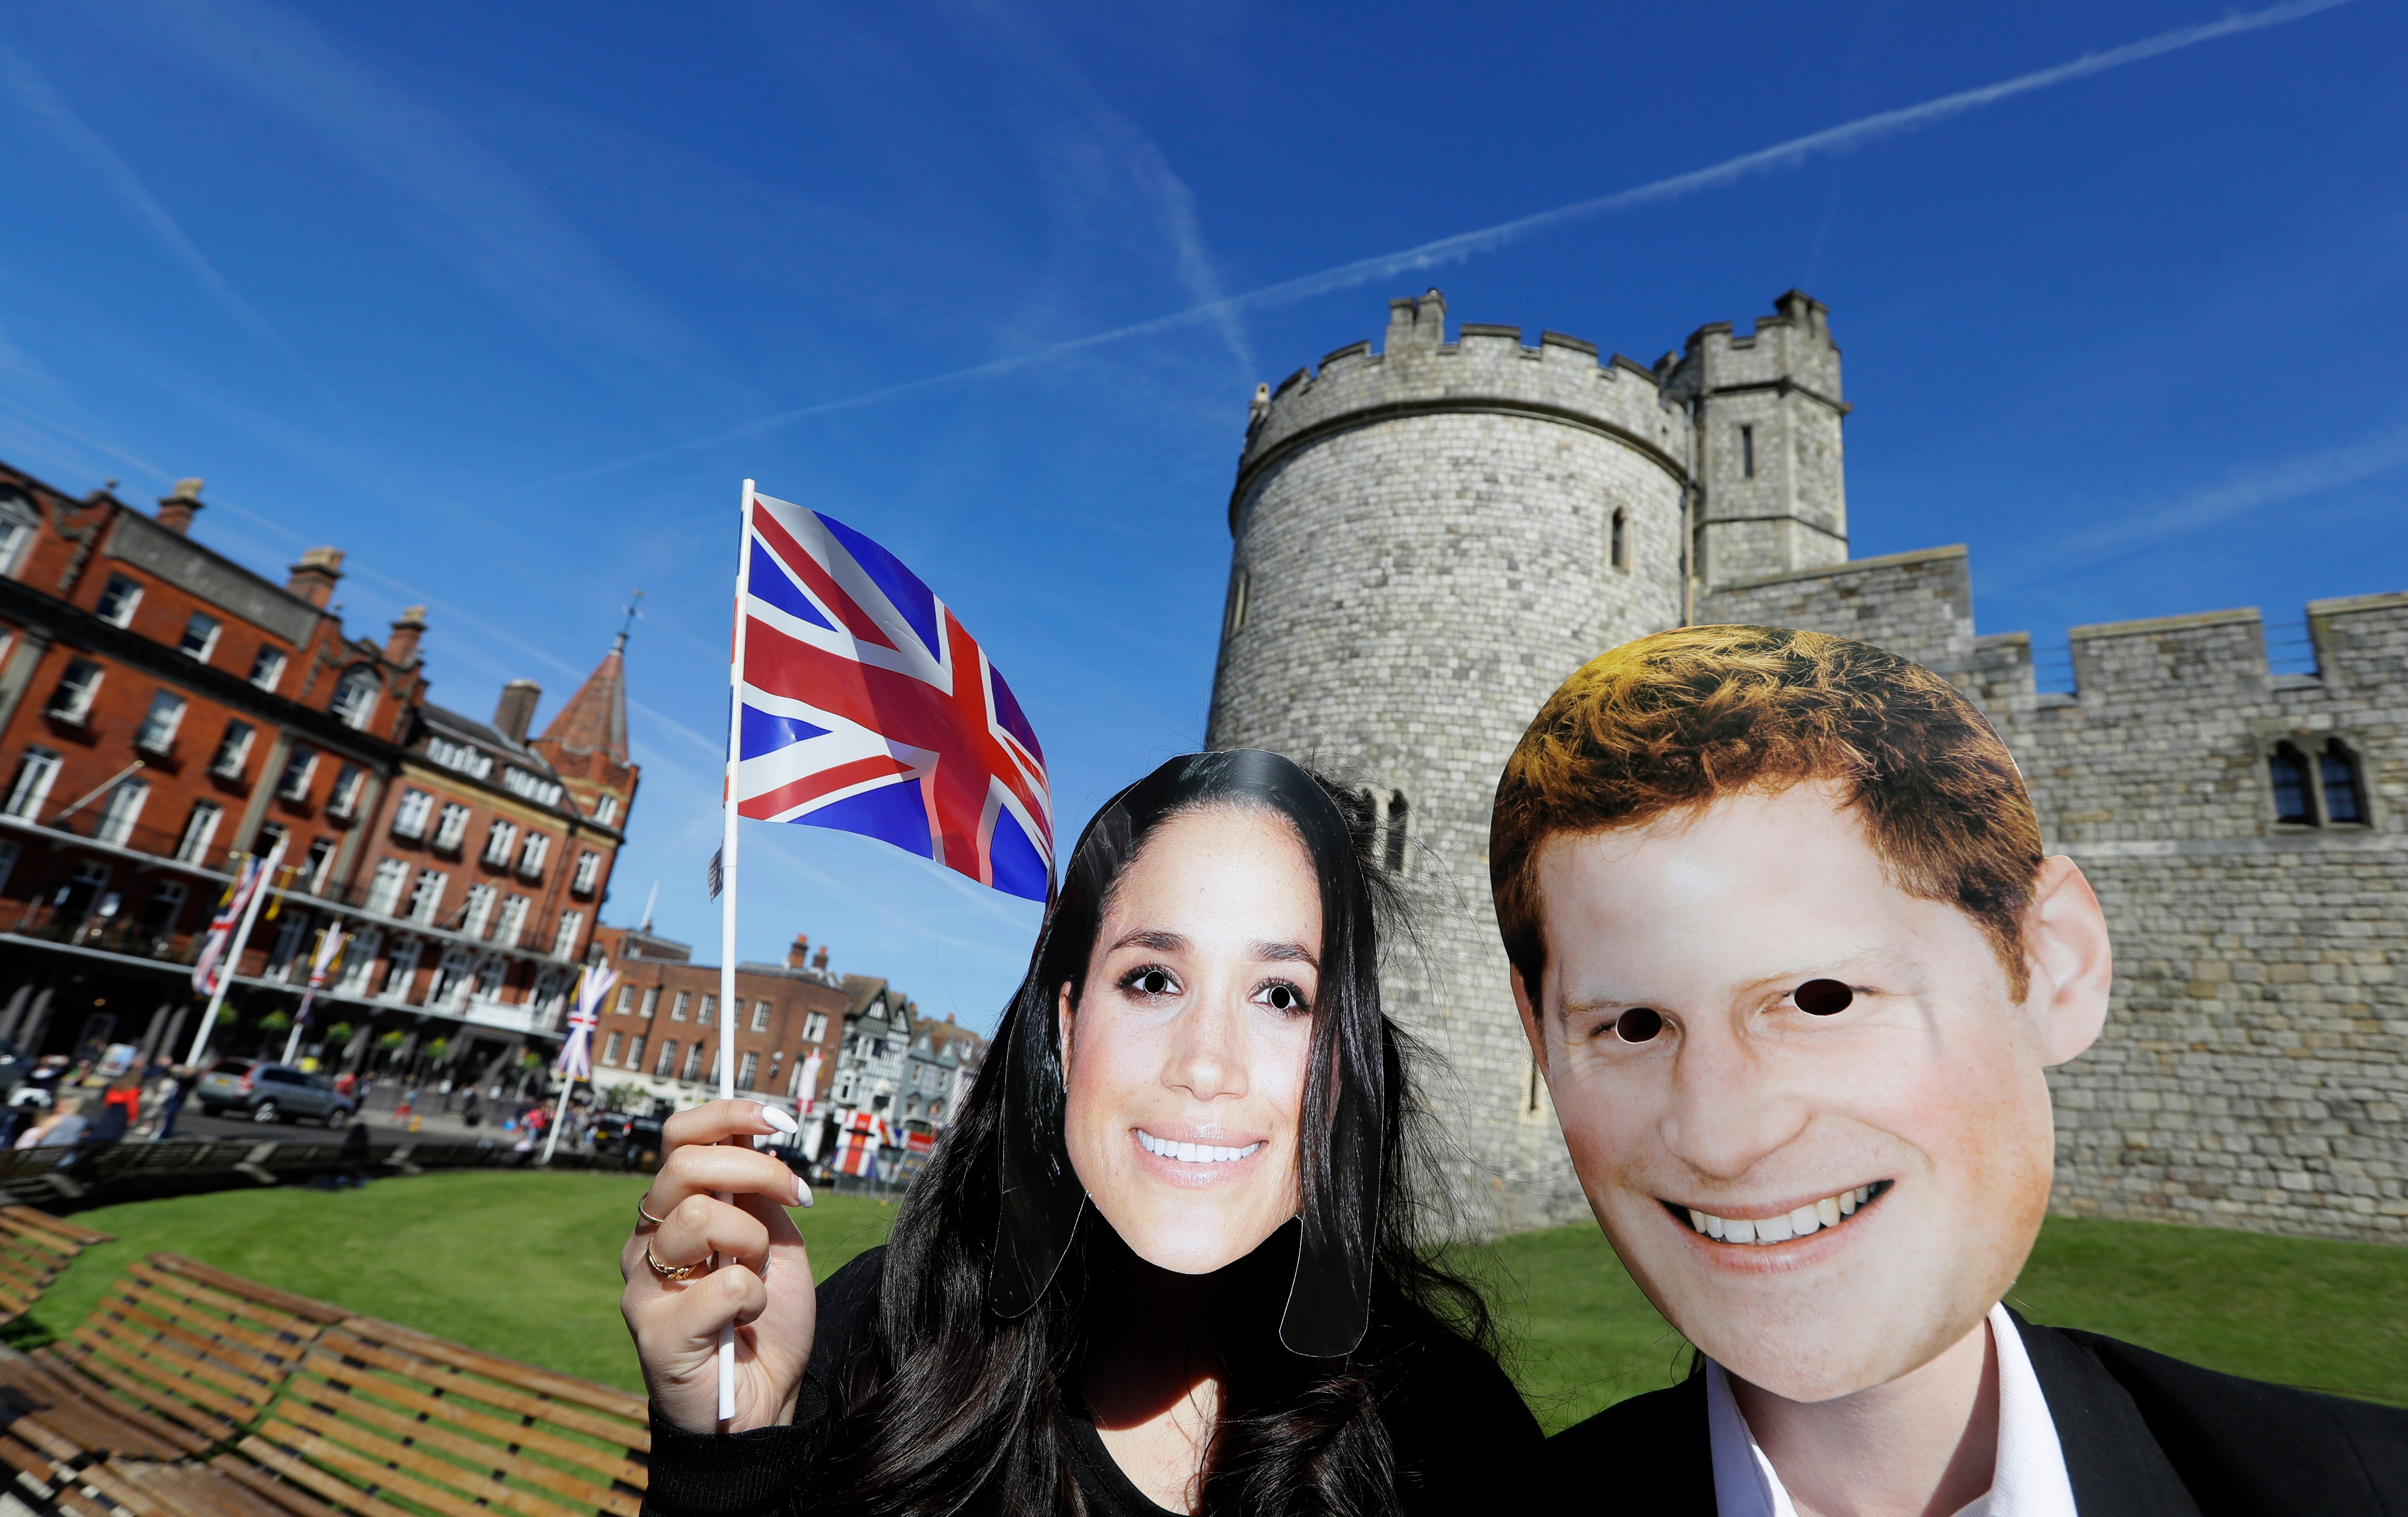 How difficult will it be for Meghan Markle to get British citizenship?